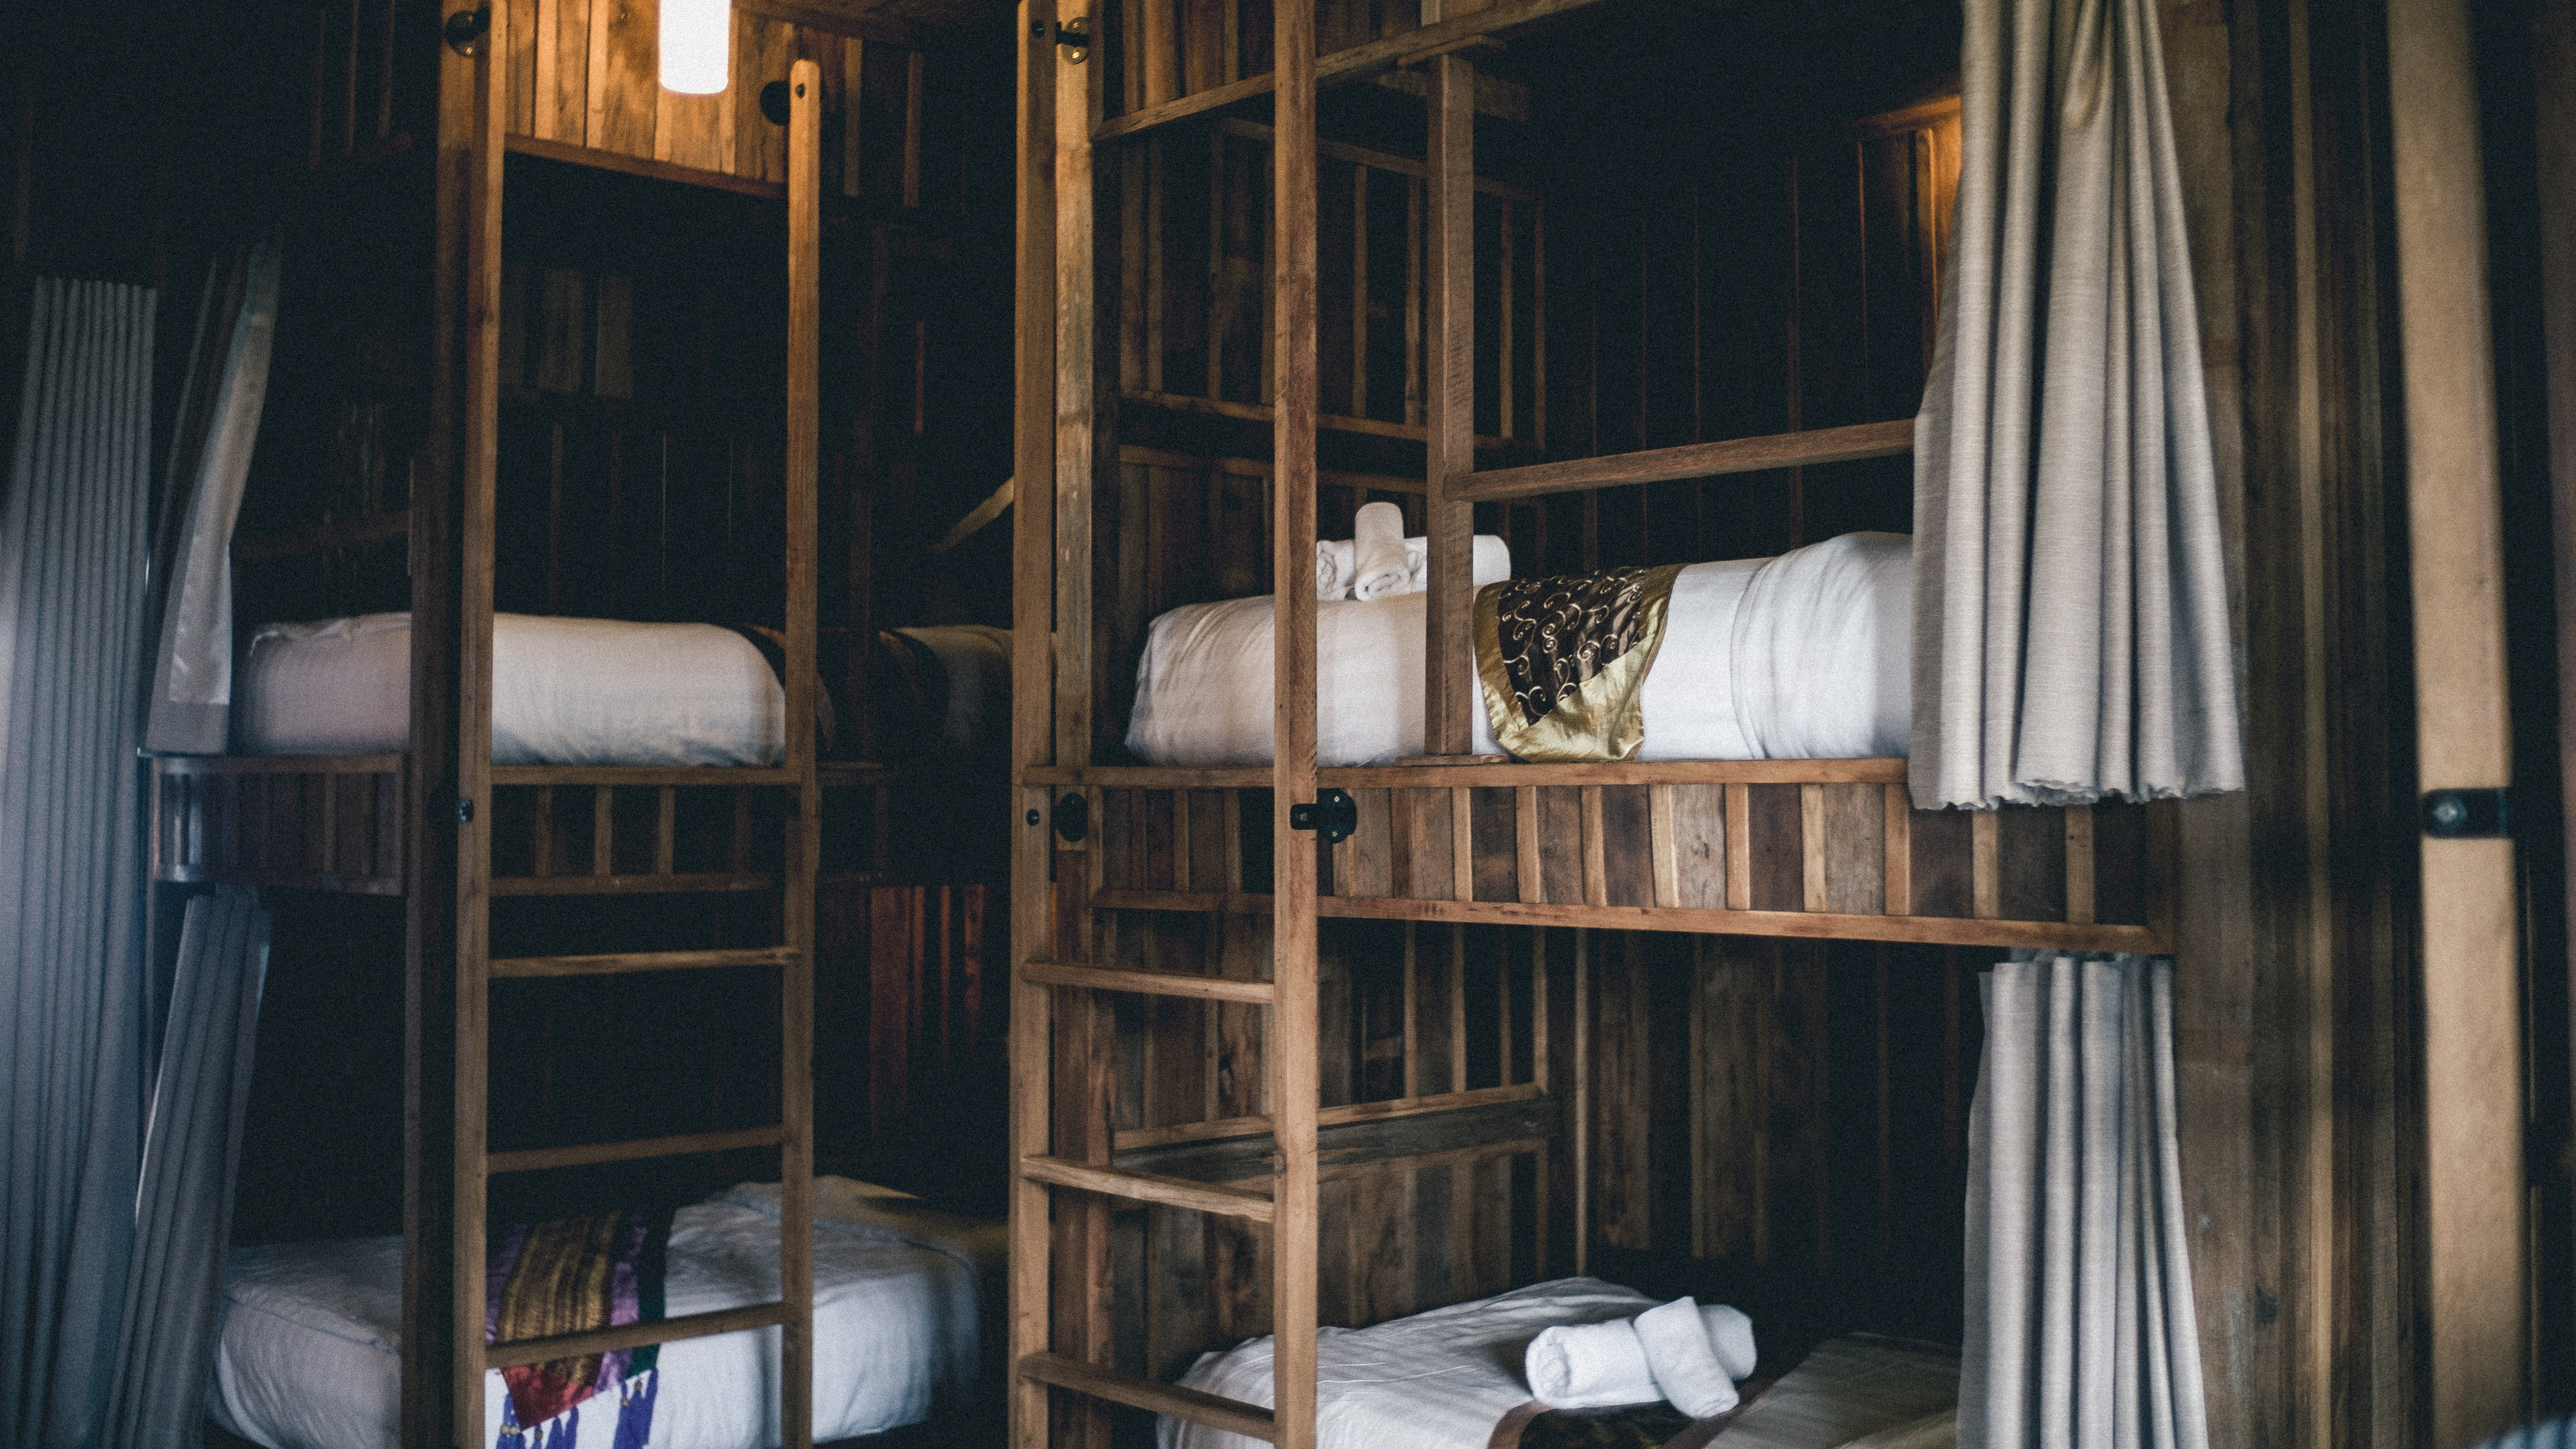 15 Tips on Your Next Hostel Dorm Stay